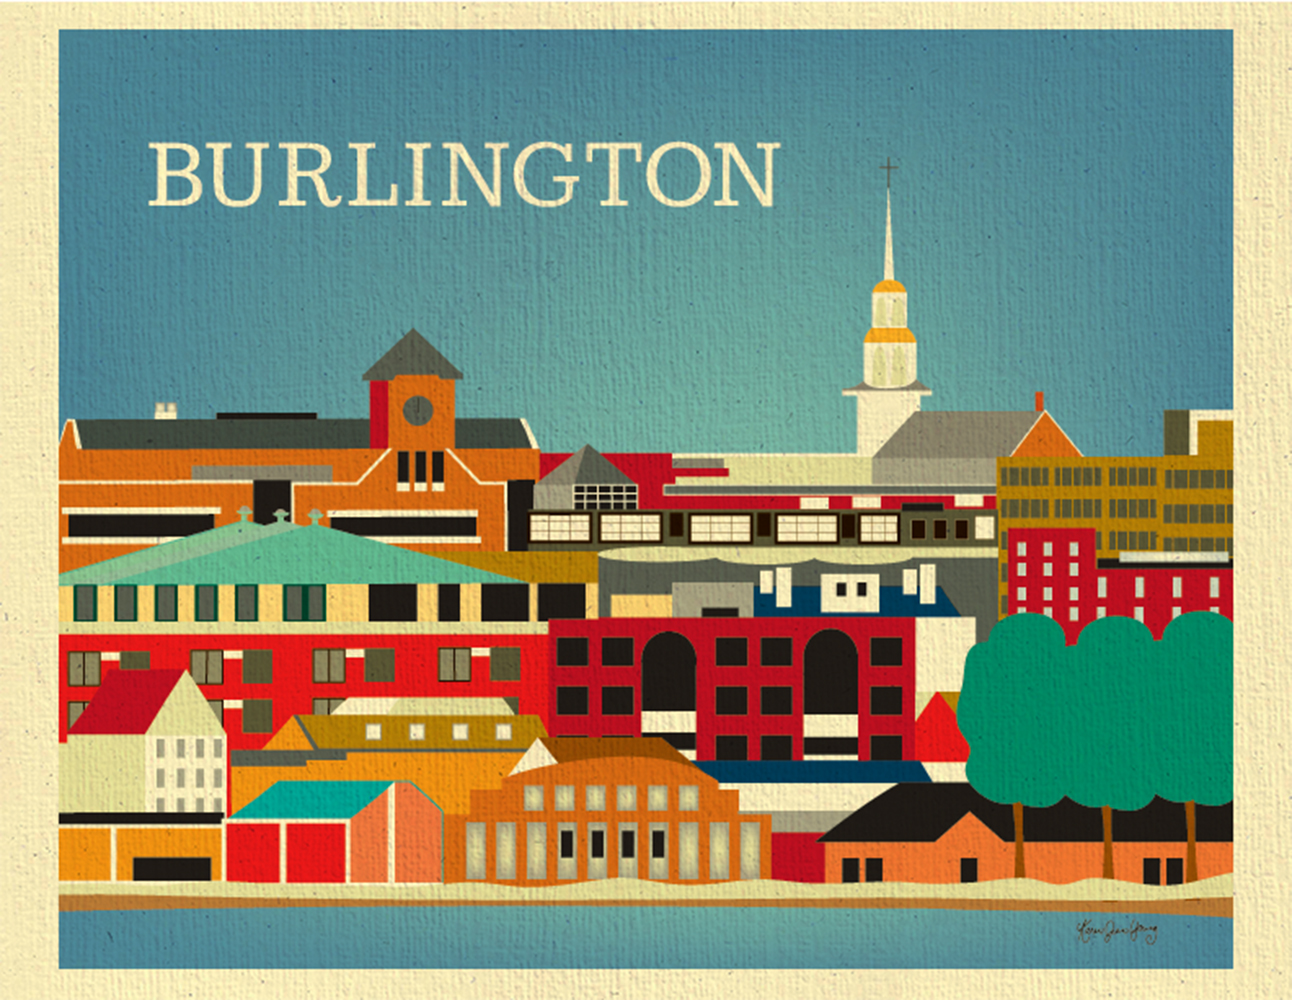 burlington vt skyline poster print american city wall